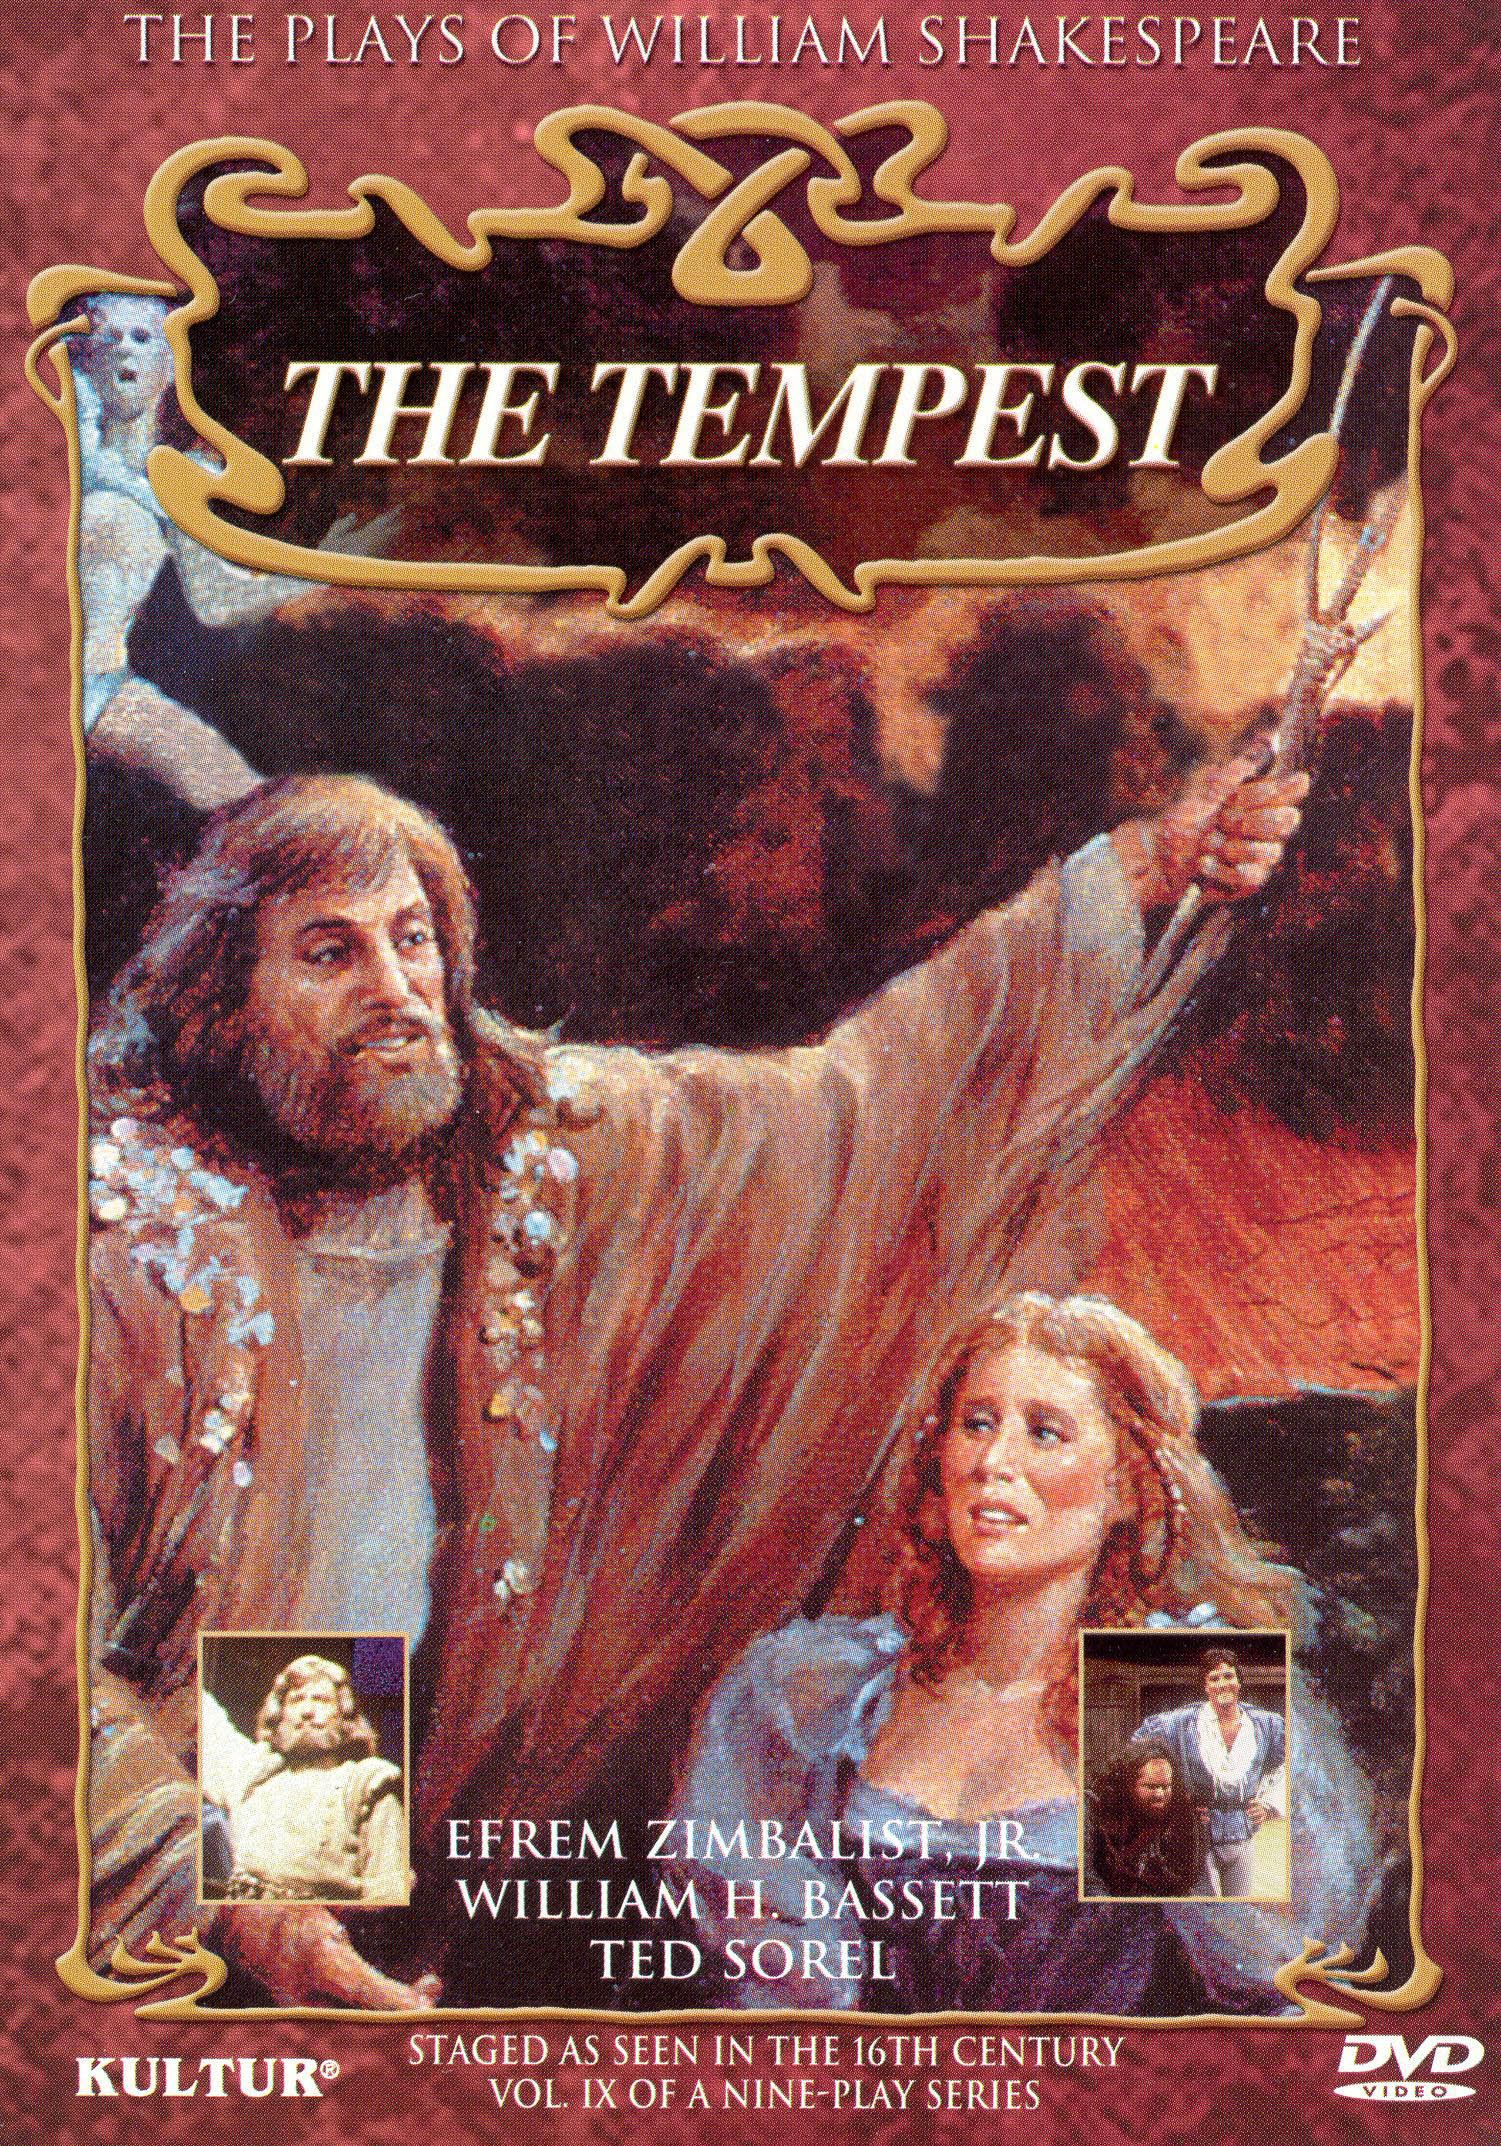 a summary of the story of the tempest by william shakespeare Story | the tempest ks2 | the tempest by william shakespeare | the tempest by shakespeare 2/8 2 set me free / the tempest plot / the tempest short summary h.